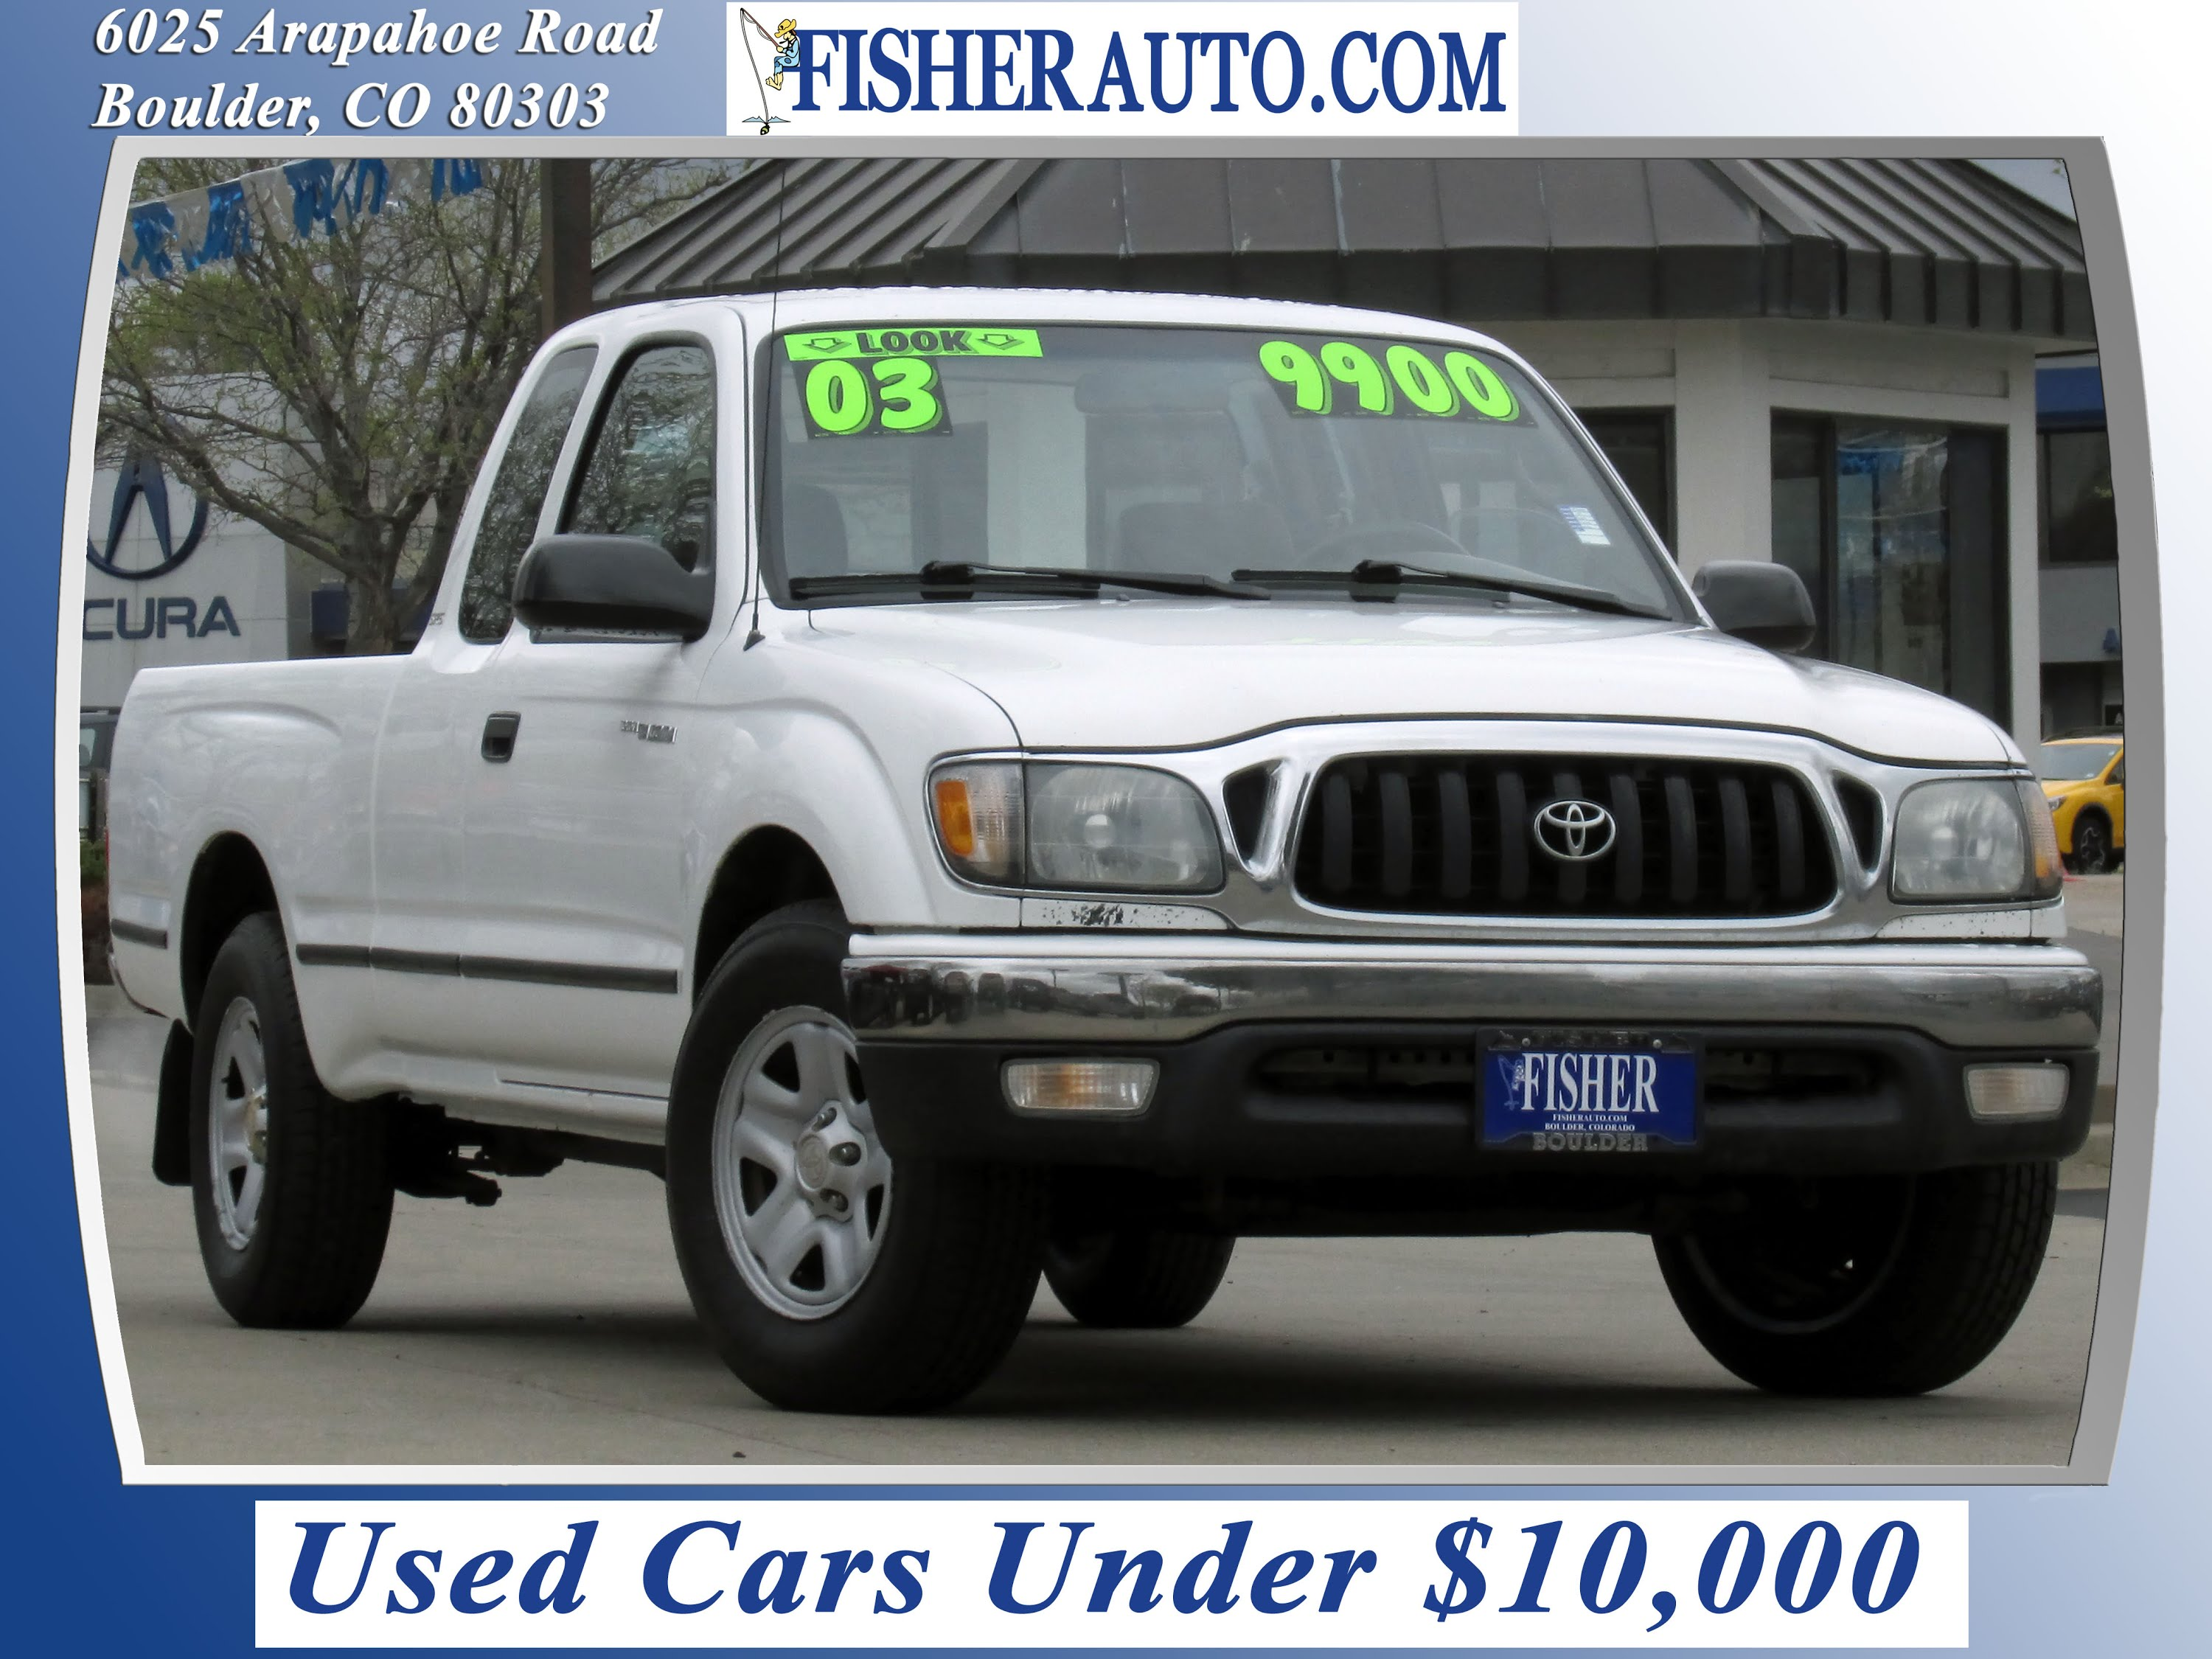 used cars 2003 toyota ta a xtracab boulder longmont denver fisher auto